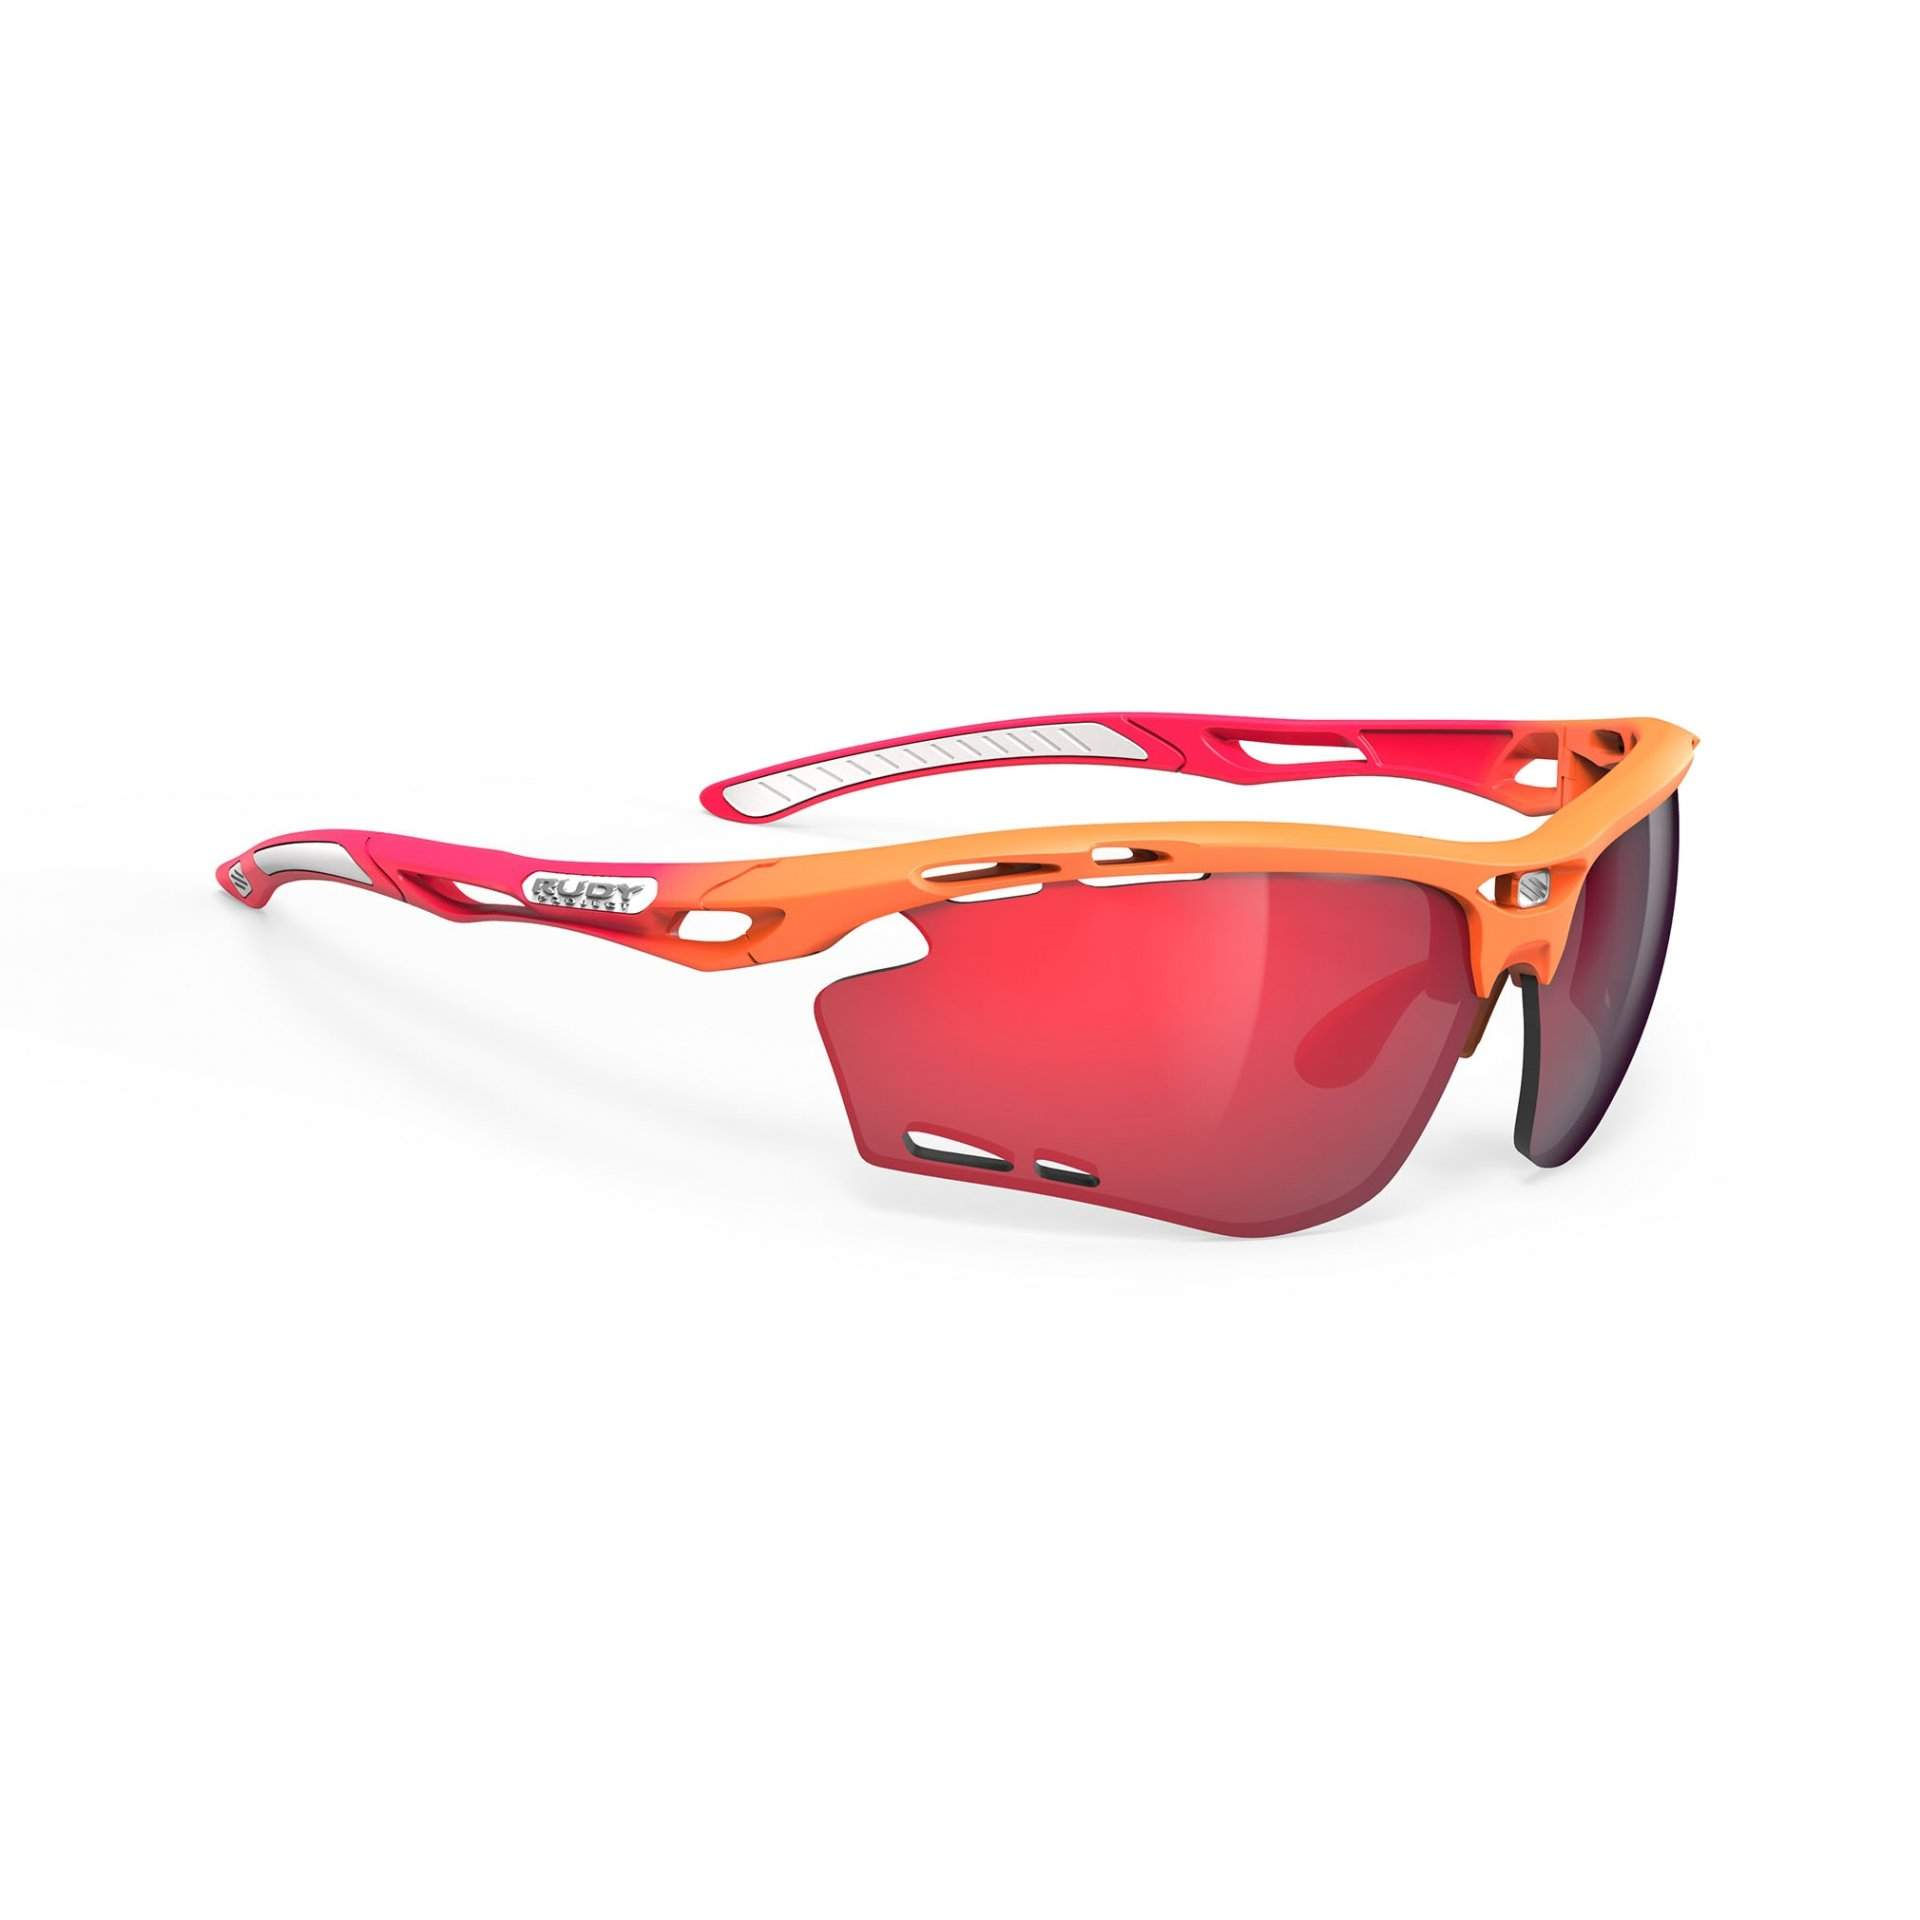 OKULARY RUDY PROJECT PROPULSE MANDARIN FADE CORAL|MULTILASER RED 1